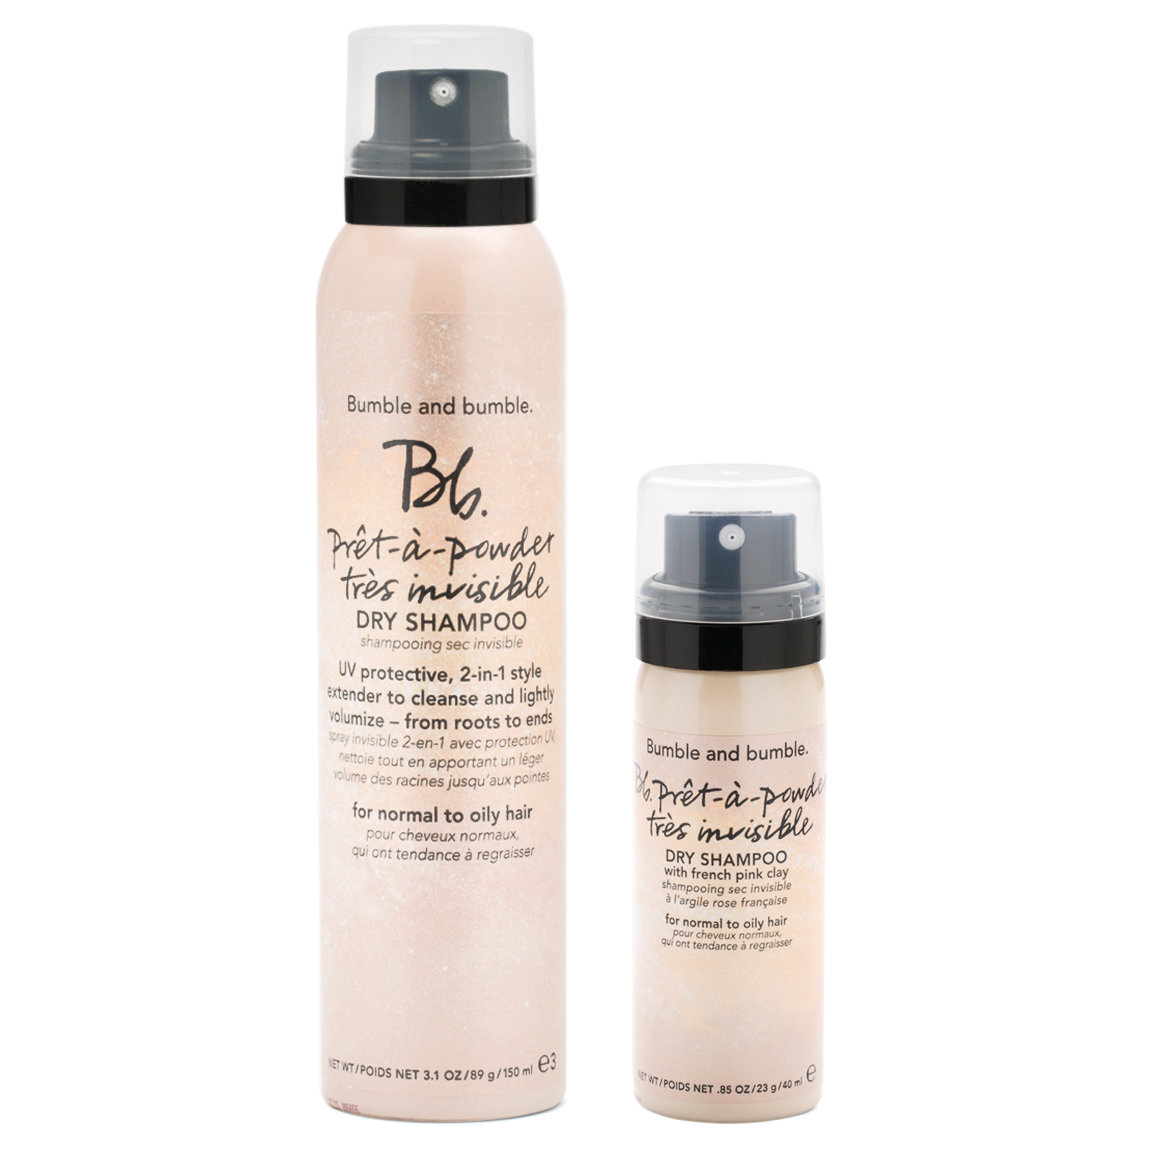 Bumble and bumble. Prêt-à-powder Très Invisible Dry Shampoo Set